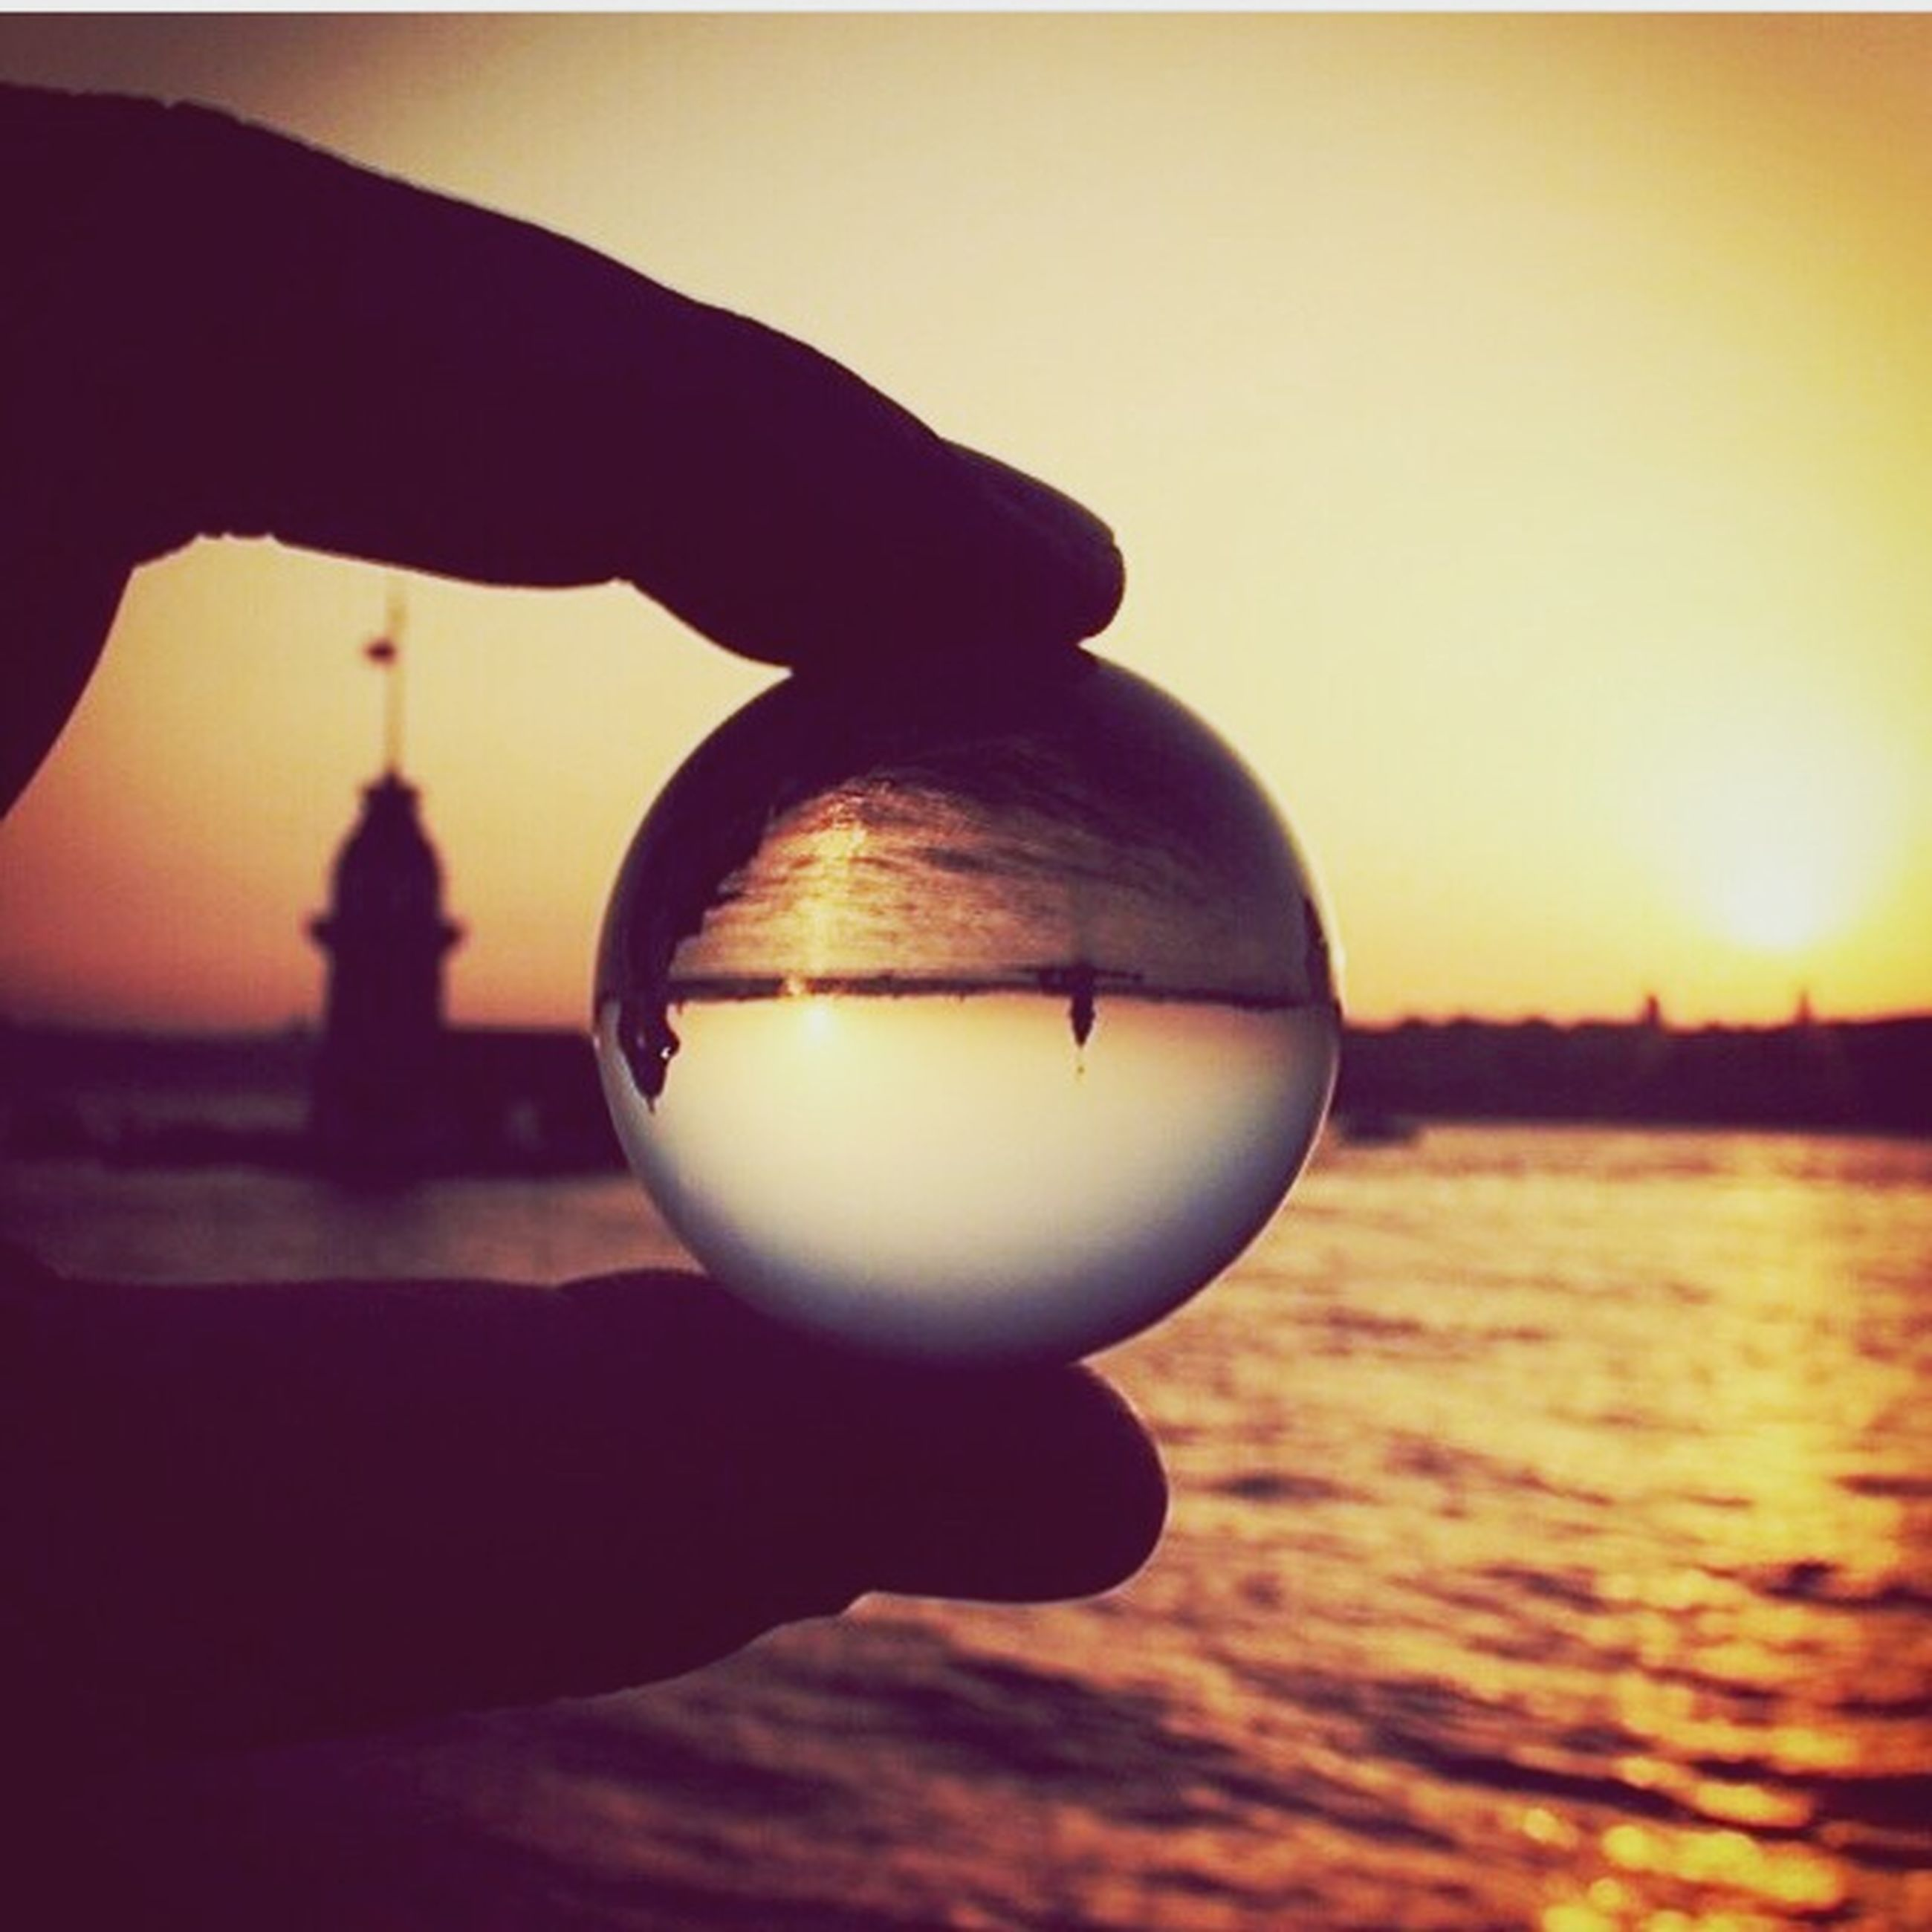 sunset, water, sky, orange color, sphere, focus on foreground, reflection, holding, sun, person, close-up, silhouette, sea, clear sky, dusk, outdoors, built structure, nature